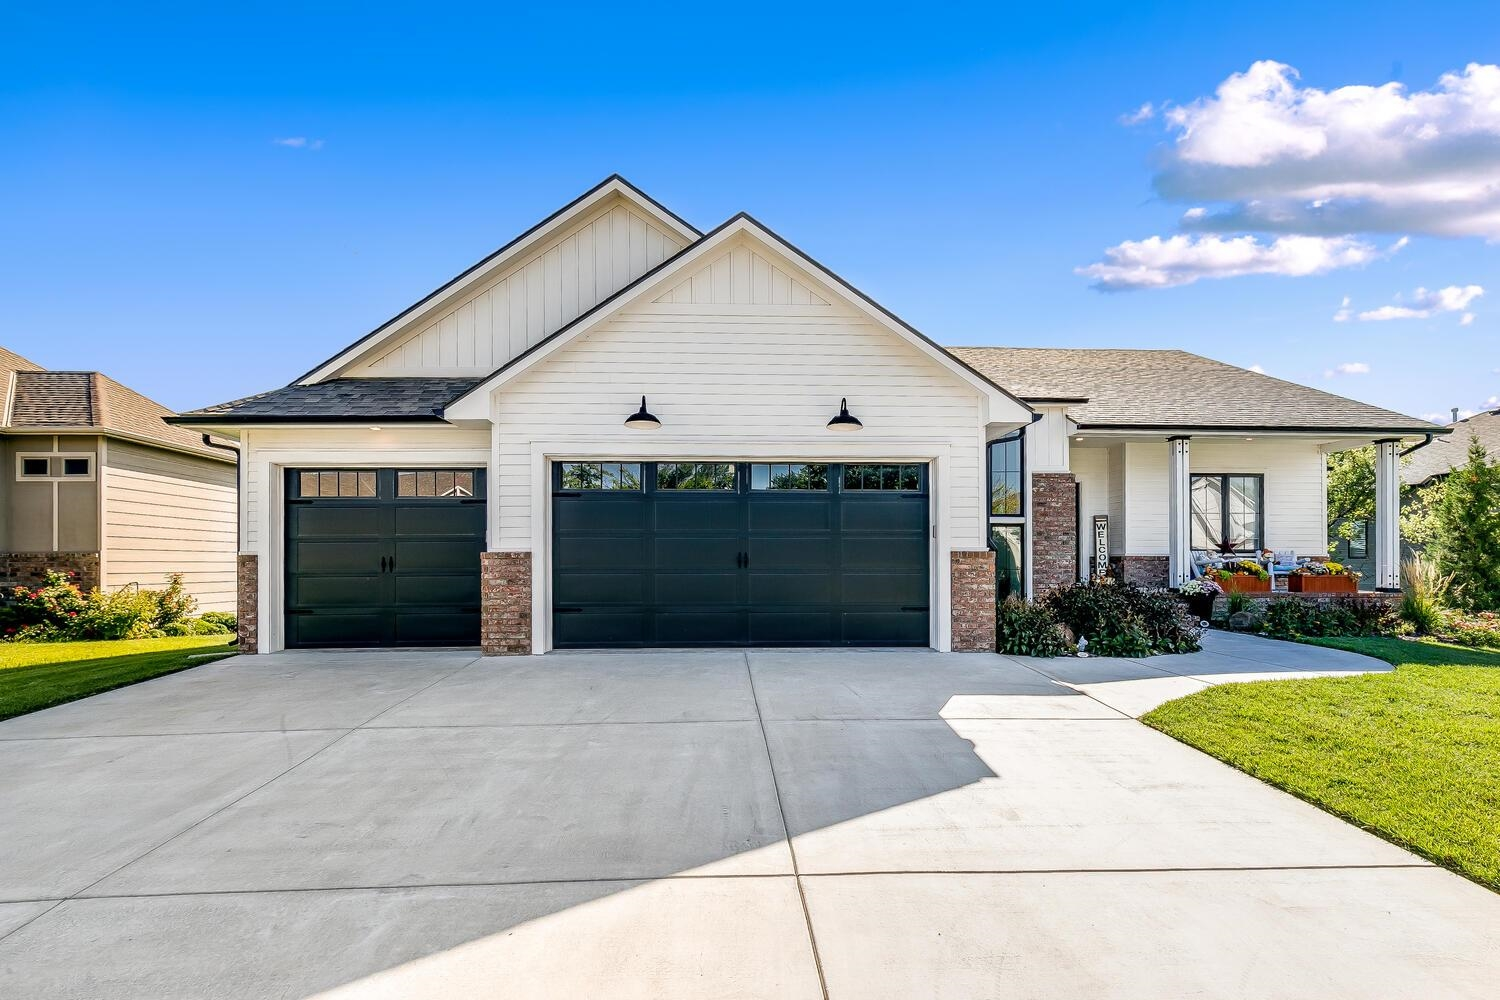 You must see this like brand new home oozing with style, unique details, exceptional trim carpentry,